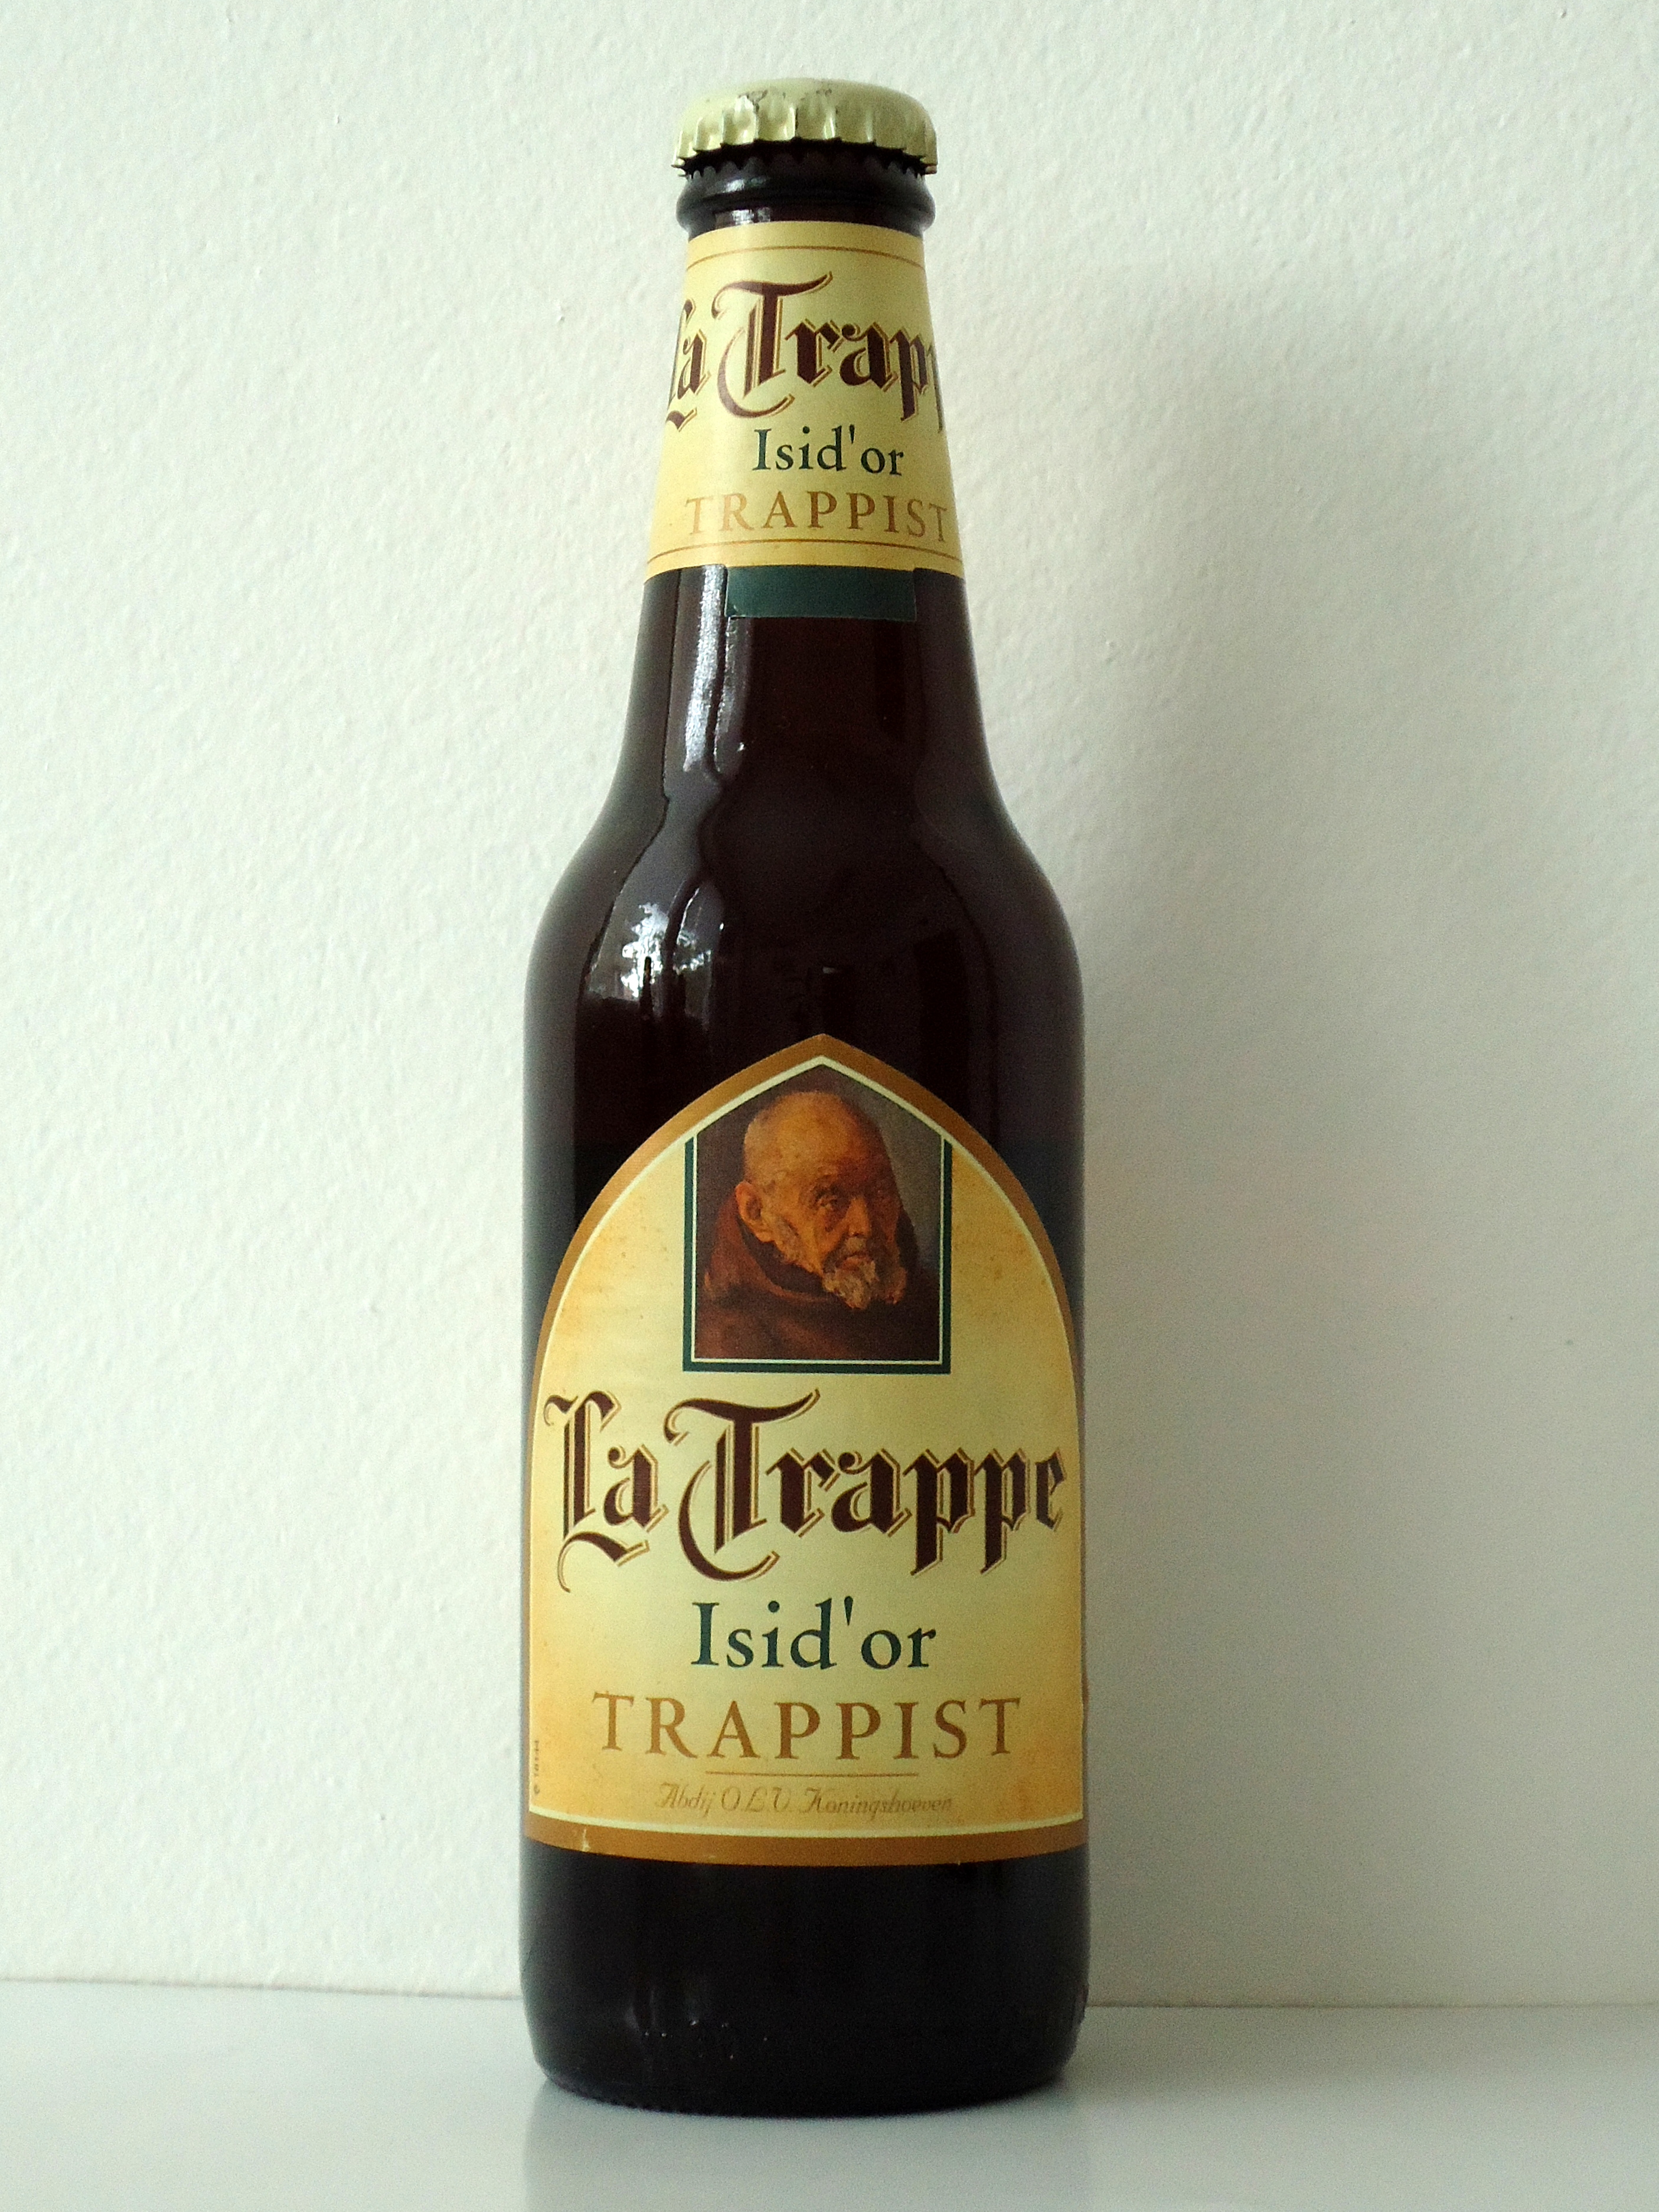 http://upload.wikimedia.org/wikipedia/commons/a/a0/La_Trappe_Isid%E2%80%99or.JPG